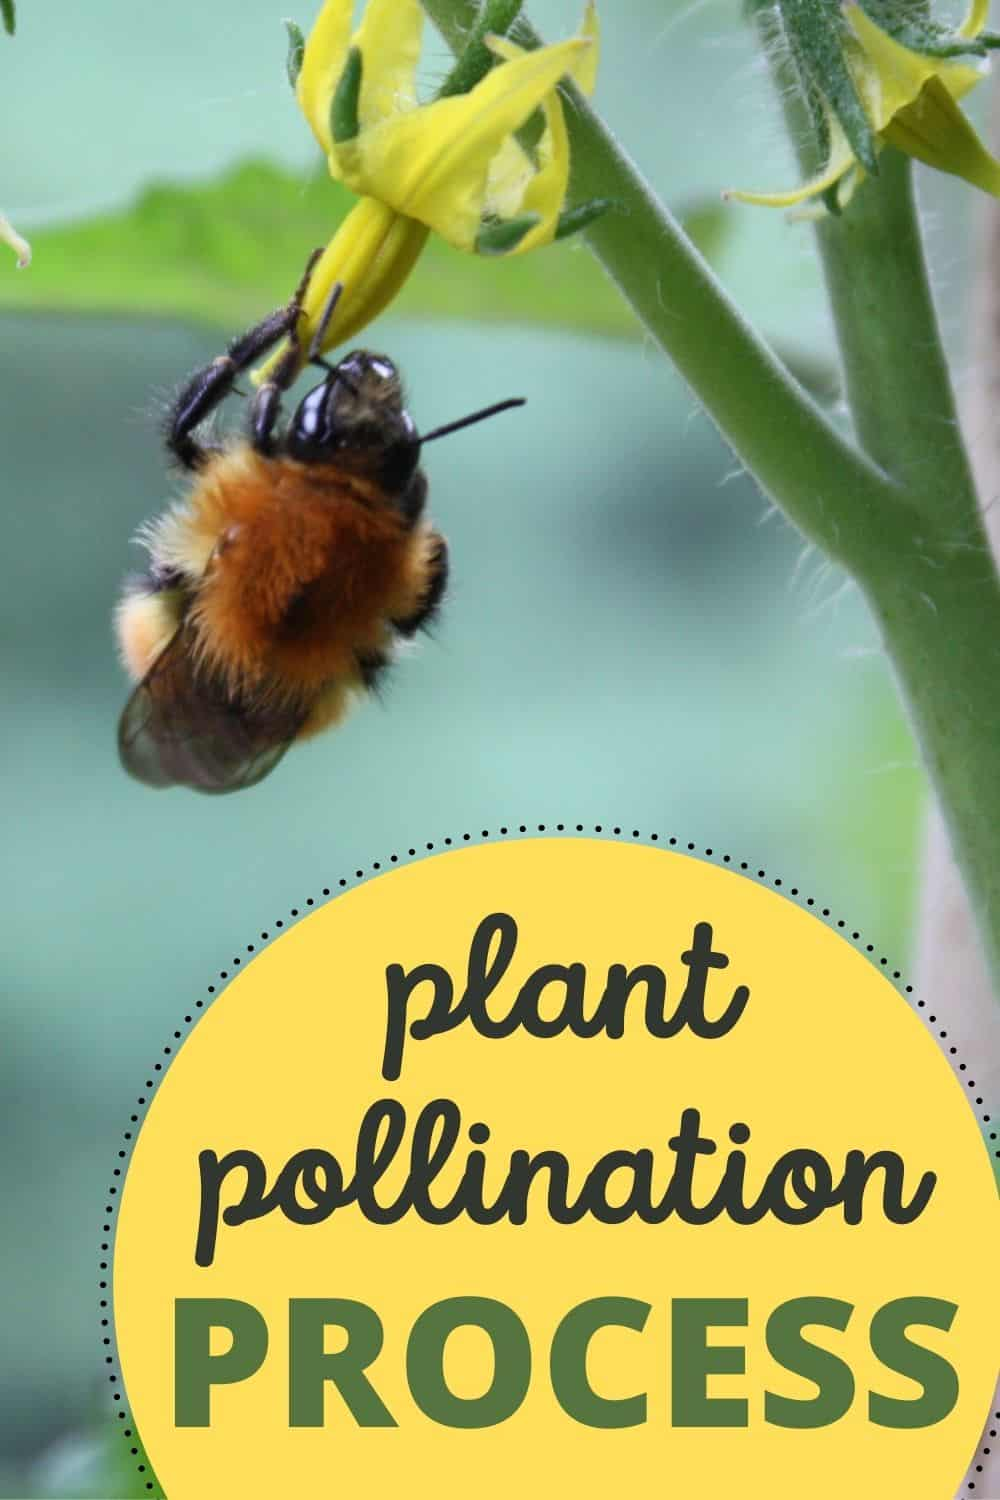 Plant pollination process in the hydroponic garden